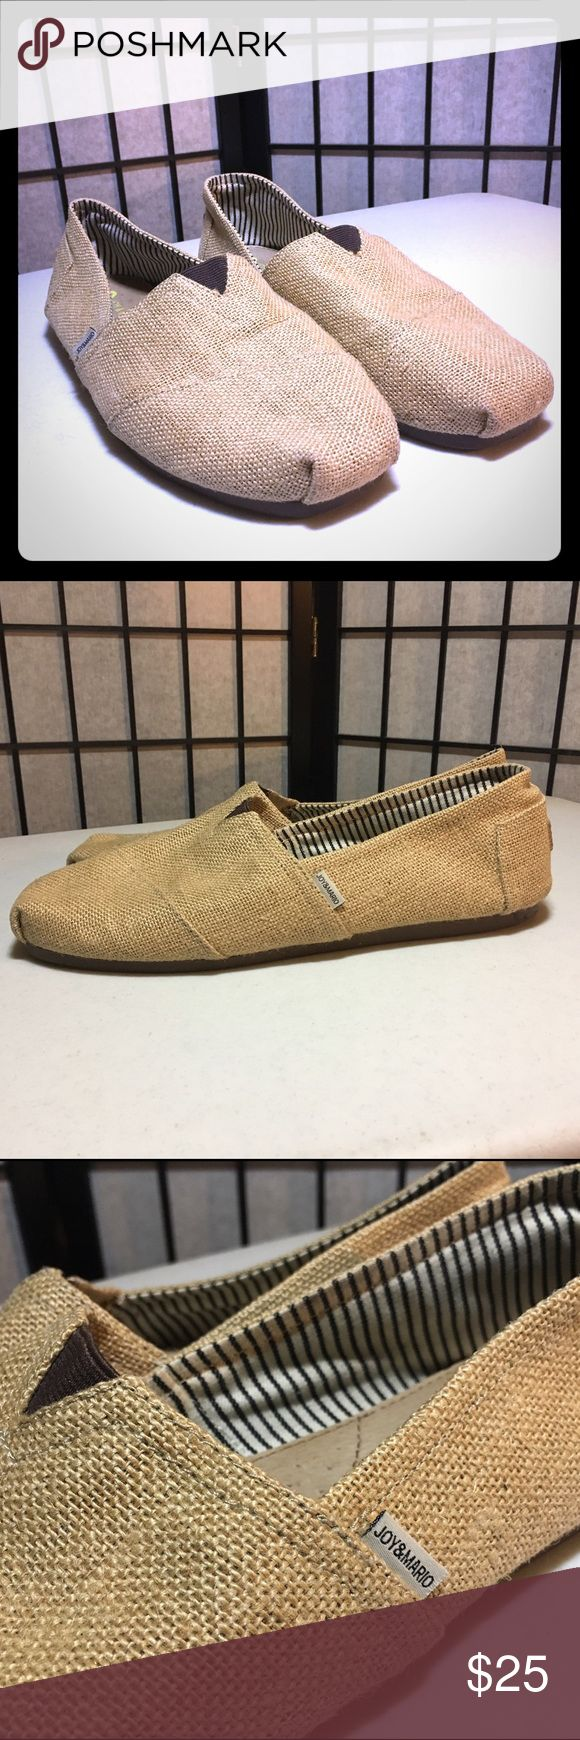 JOY & MARIO Tan Leisure Shoes designed by Italy Beige Toms Style Men's slip on Joy & Mario Shoes Loafers & Slip-Ons